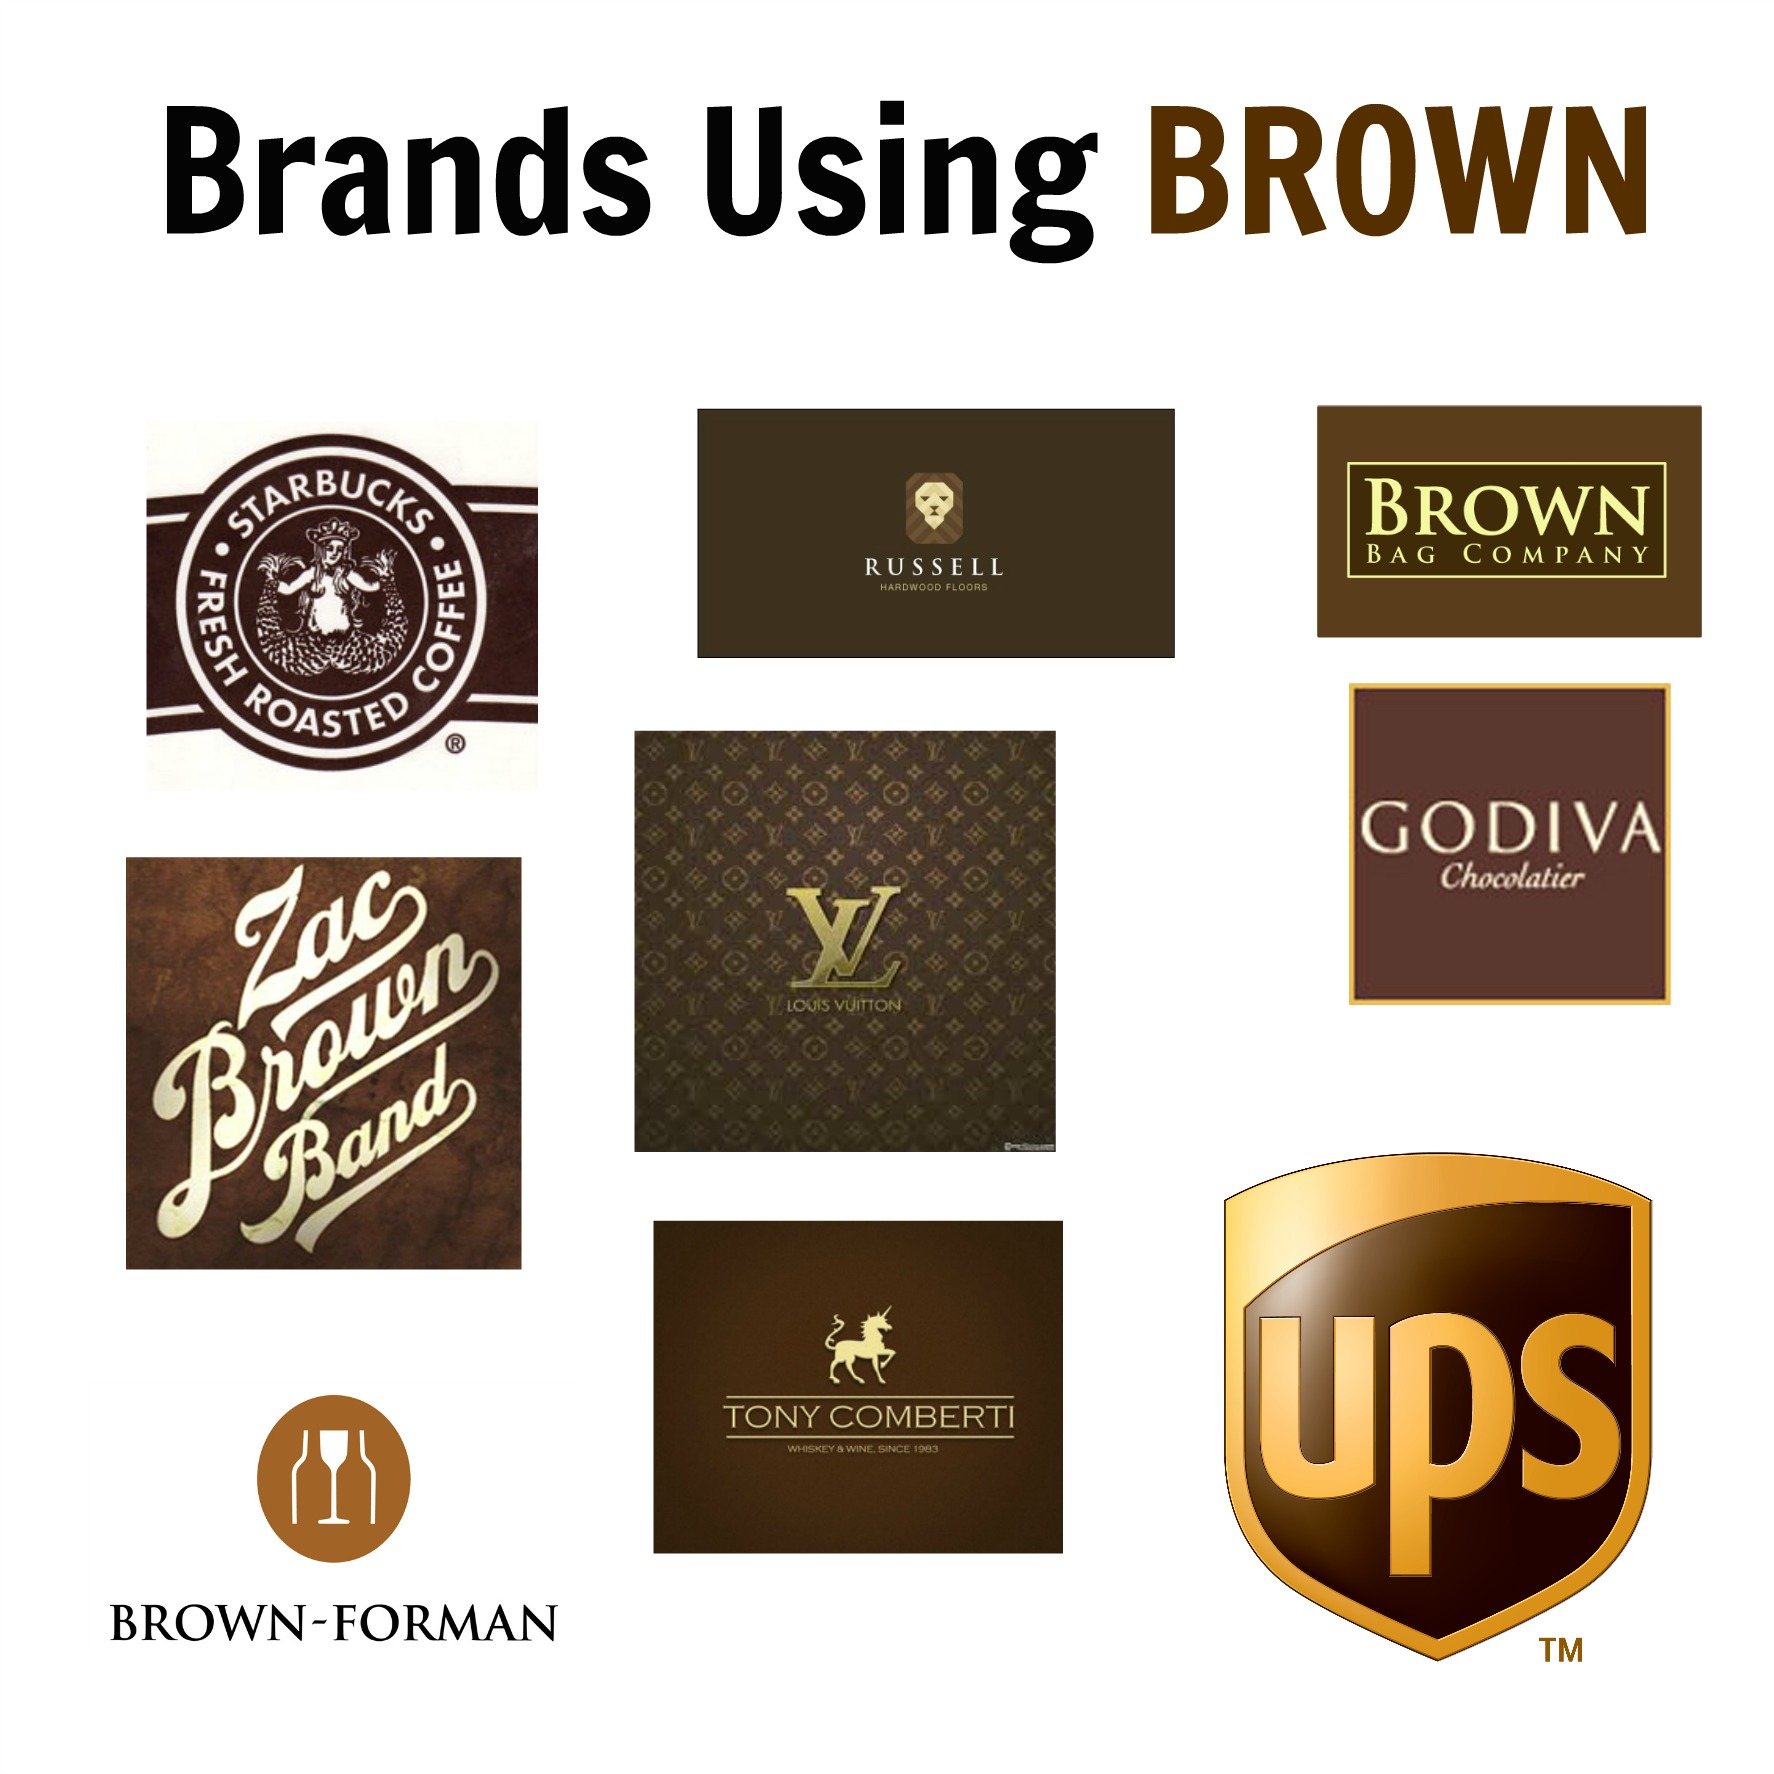 Brands Using Brown